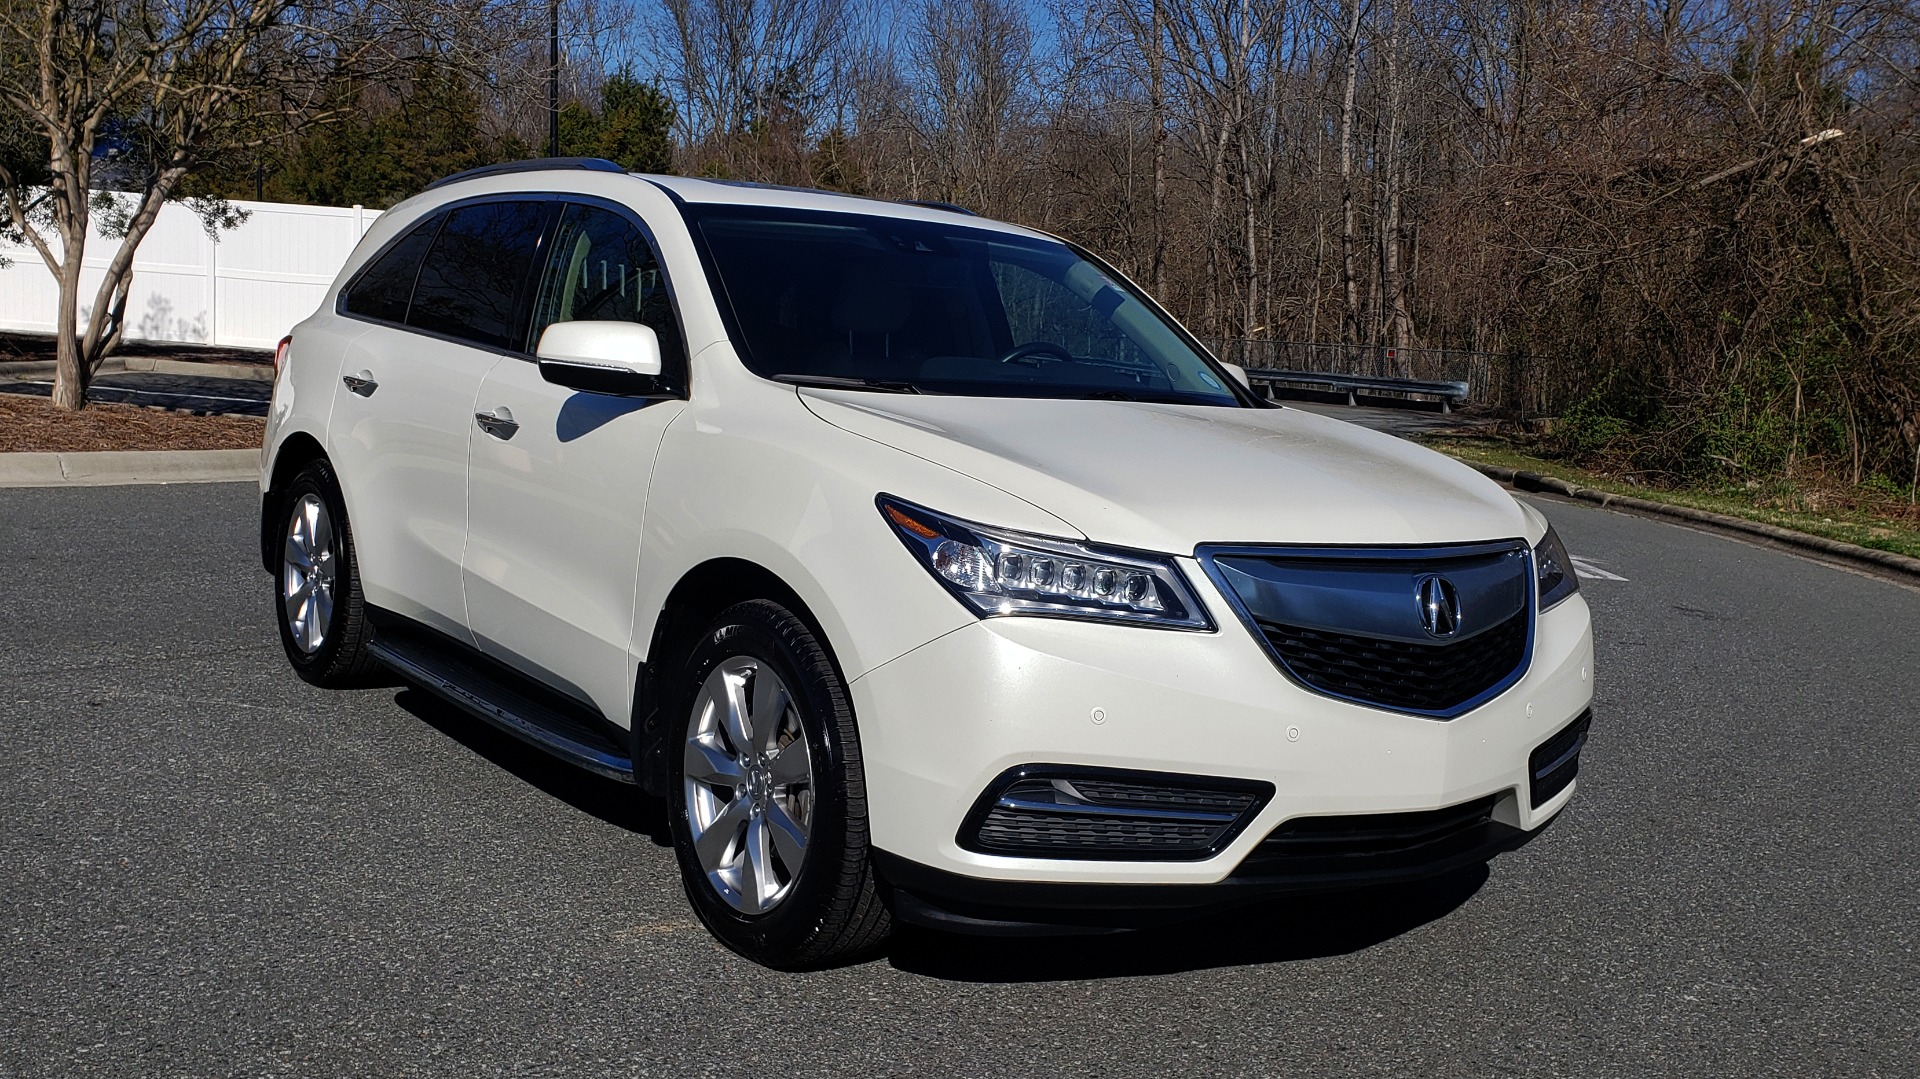 Used 2016 Acura MDX AWD W/ADVANCED PKG / NAV / SUNROOF / REARVIEW / 3-ROW for sale Sold at Formula Imports in Charlotte NC 28227 4